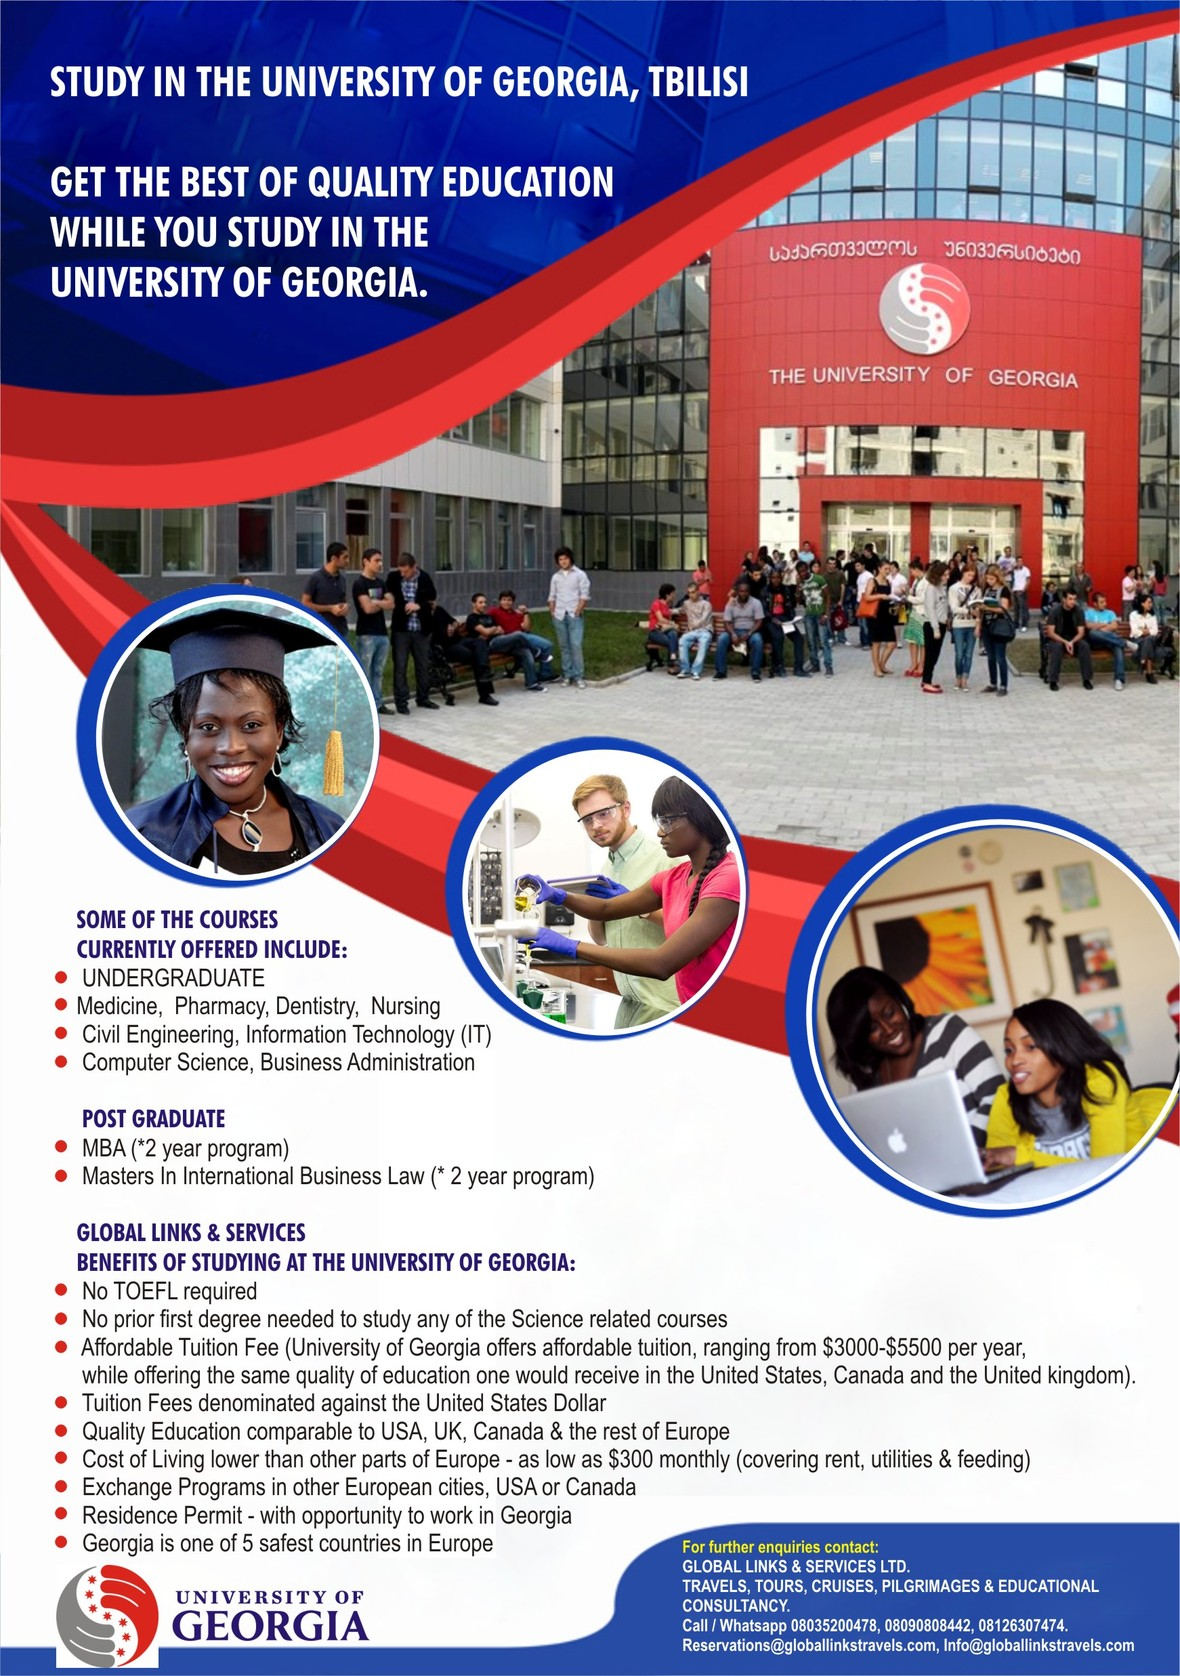 ADMISSION FOR UNDERGRADUATE STUDENTS AGES 17 AND ABOVE NOW ON AT THE UNIVERSITY OF GEORGIA-TBILISI!!!